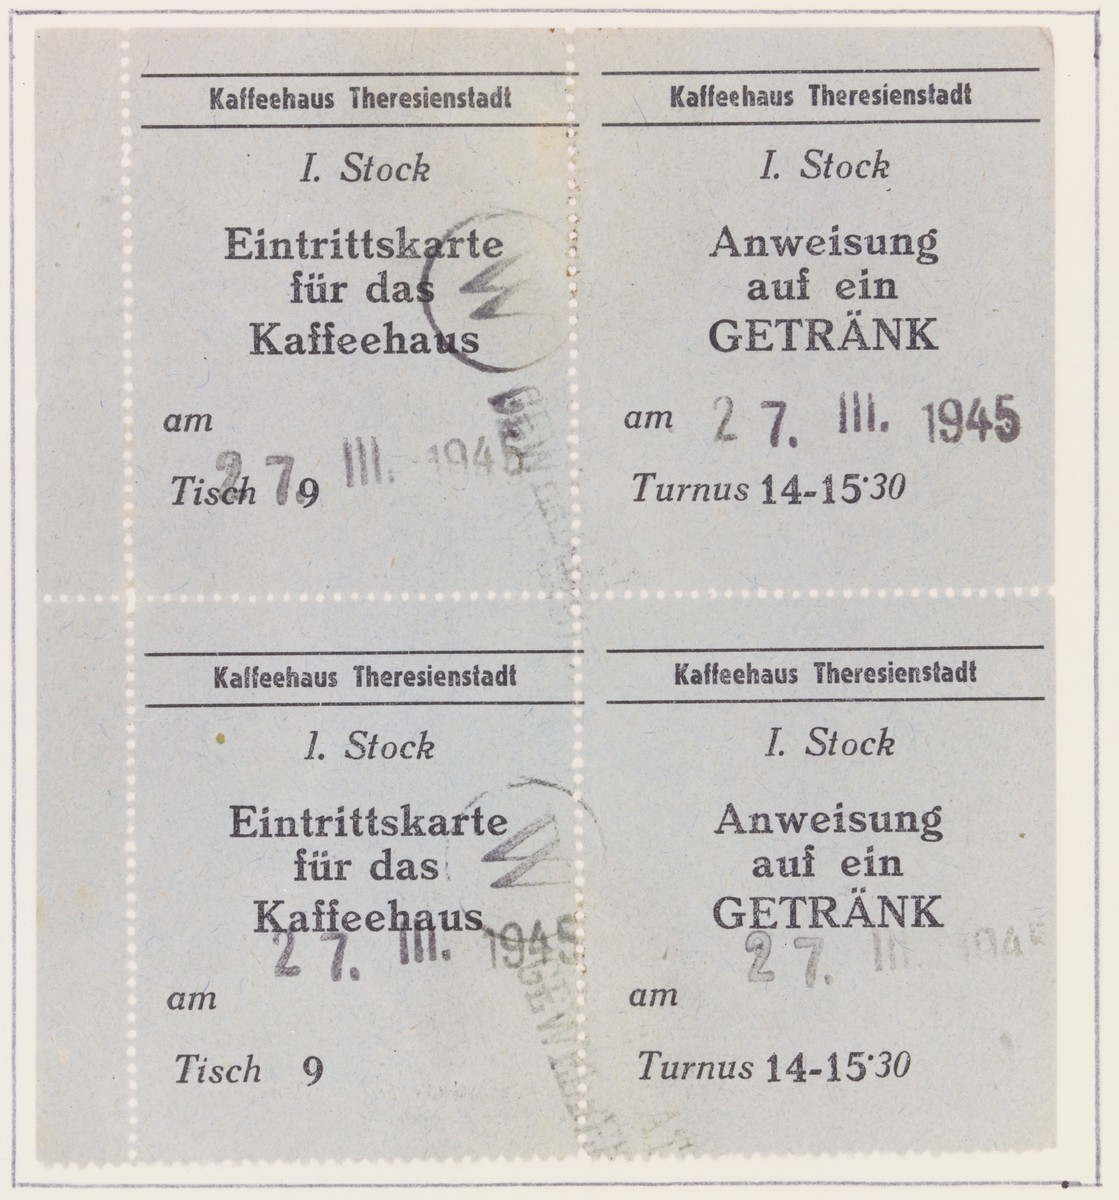 Tickets of admission to the Theresienstadt coffee house stamped with the date March 27, 1945.  The tickets provided entry and one drink between the hours of 2 and 3:30p.m.